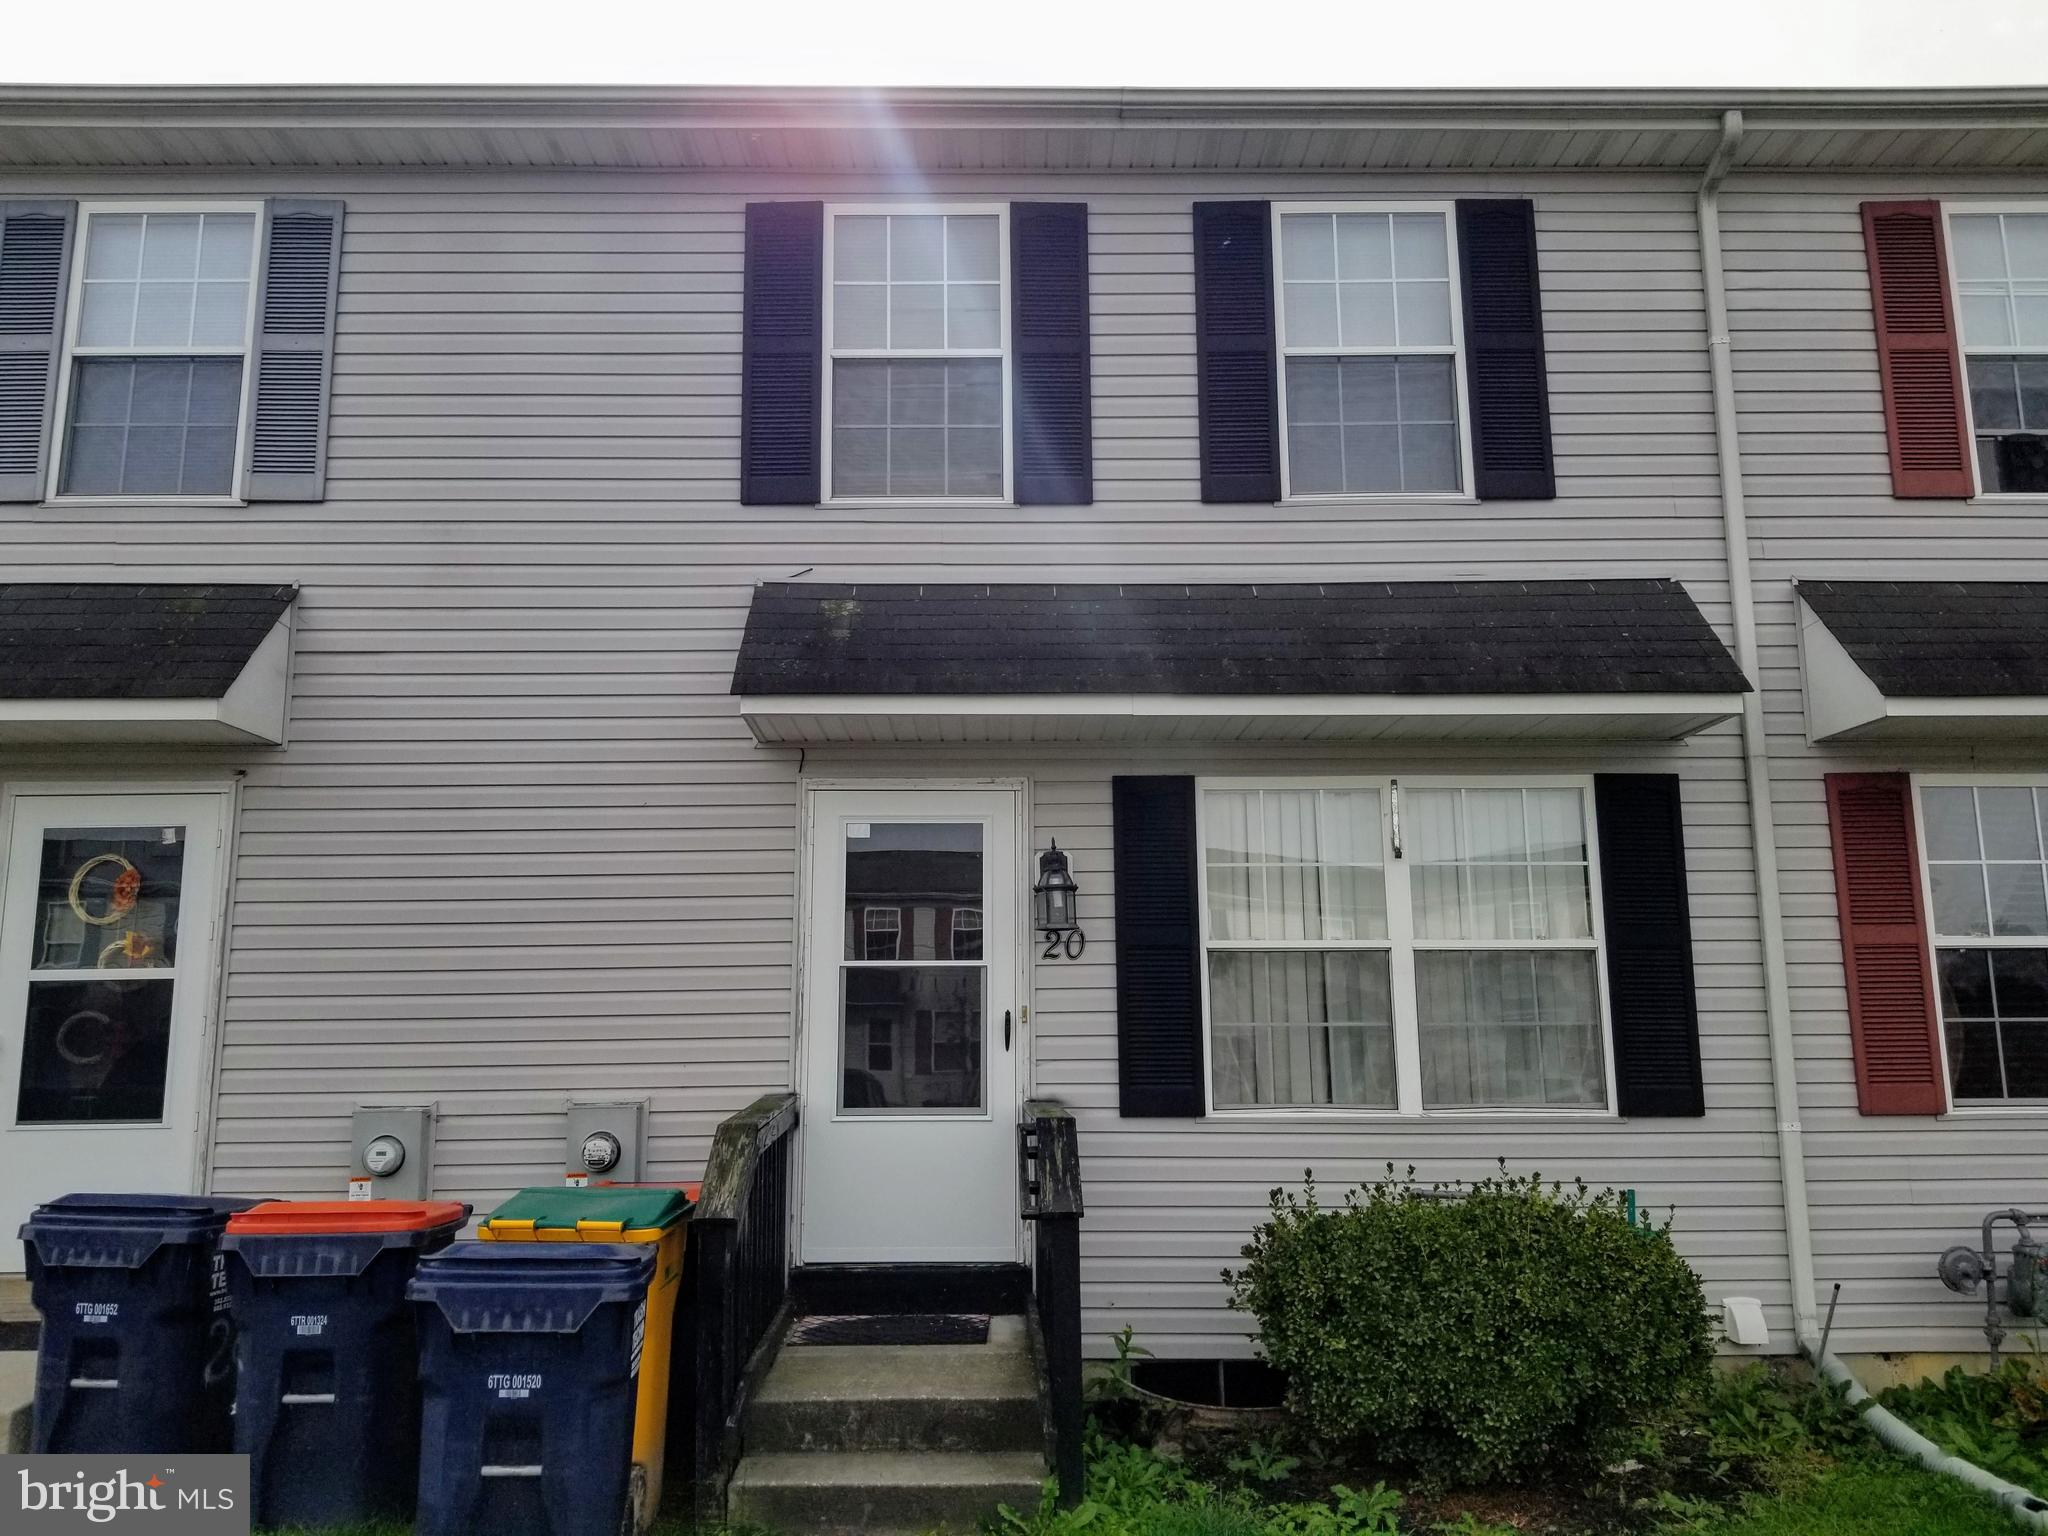 Investor Alert! Priced to sell quickly! This 3 bedroom, 1.5 Bath town home is located in the heart of Middletown. Large Fenced backyard. Tenant in place until May 2020. Within walking distance to Redding Middle school. ~~Schedule your showing today~~